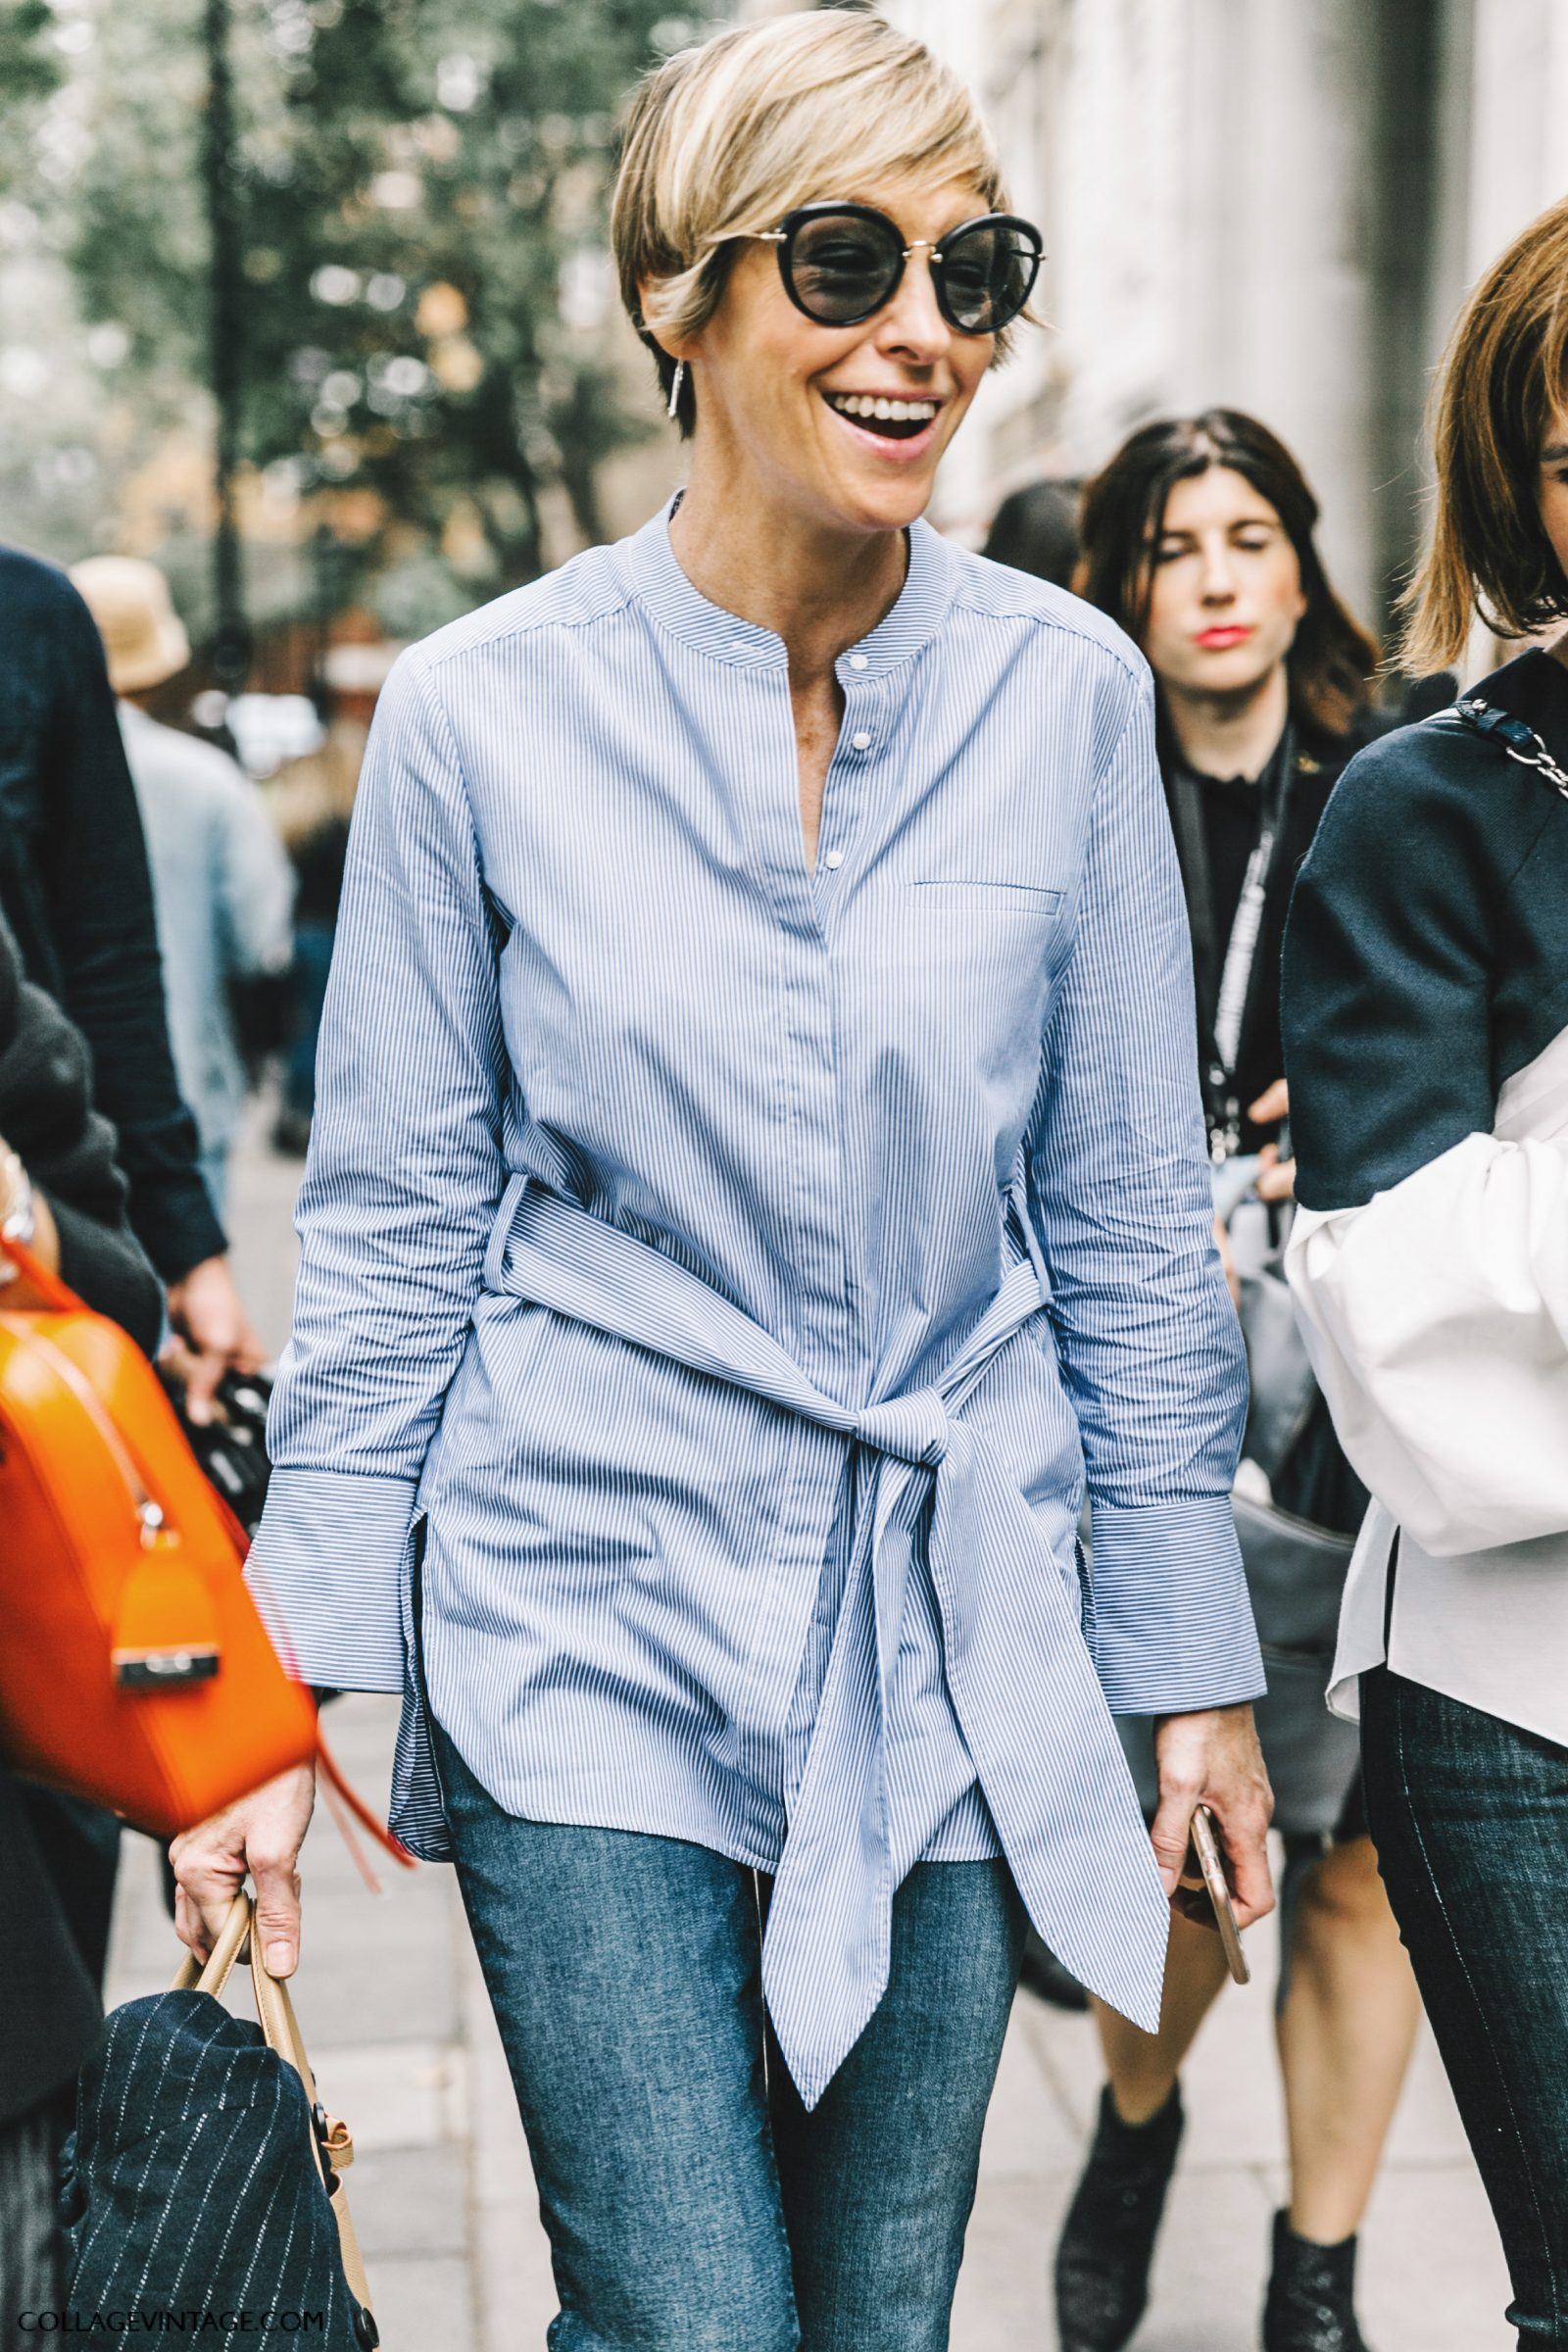 lfw-london_fashion_week_ss17-street_style-outfits-collage_vintage-vintage-topshop_unique-anya-mulberry-preen-12